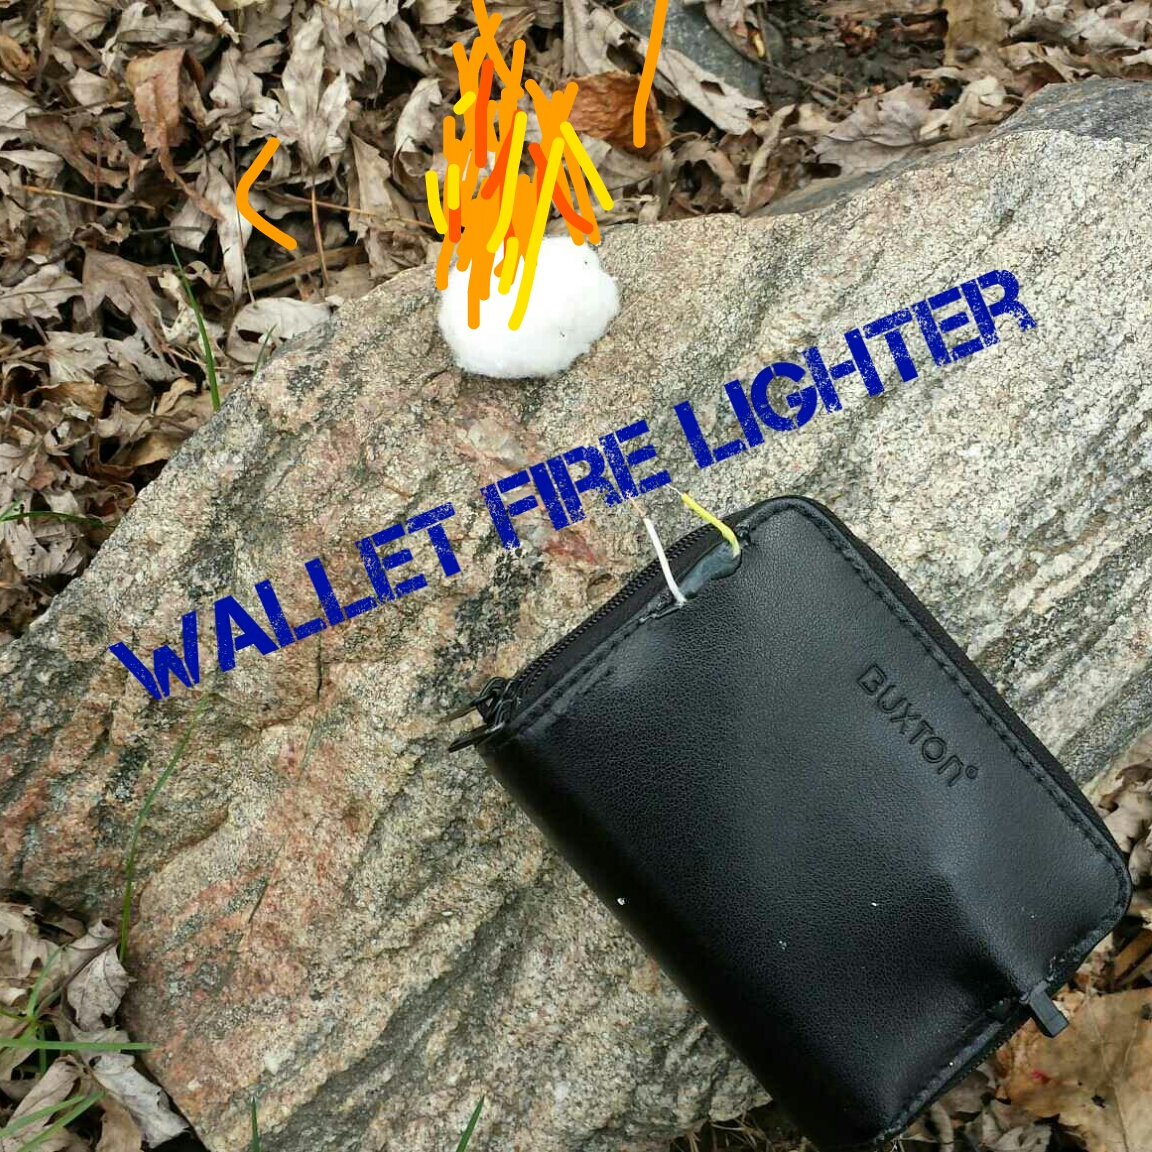 wallet fire lighter